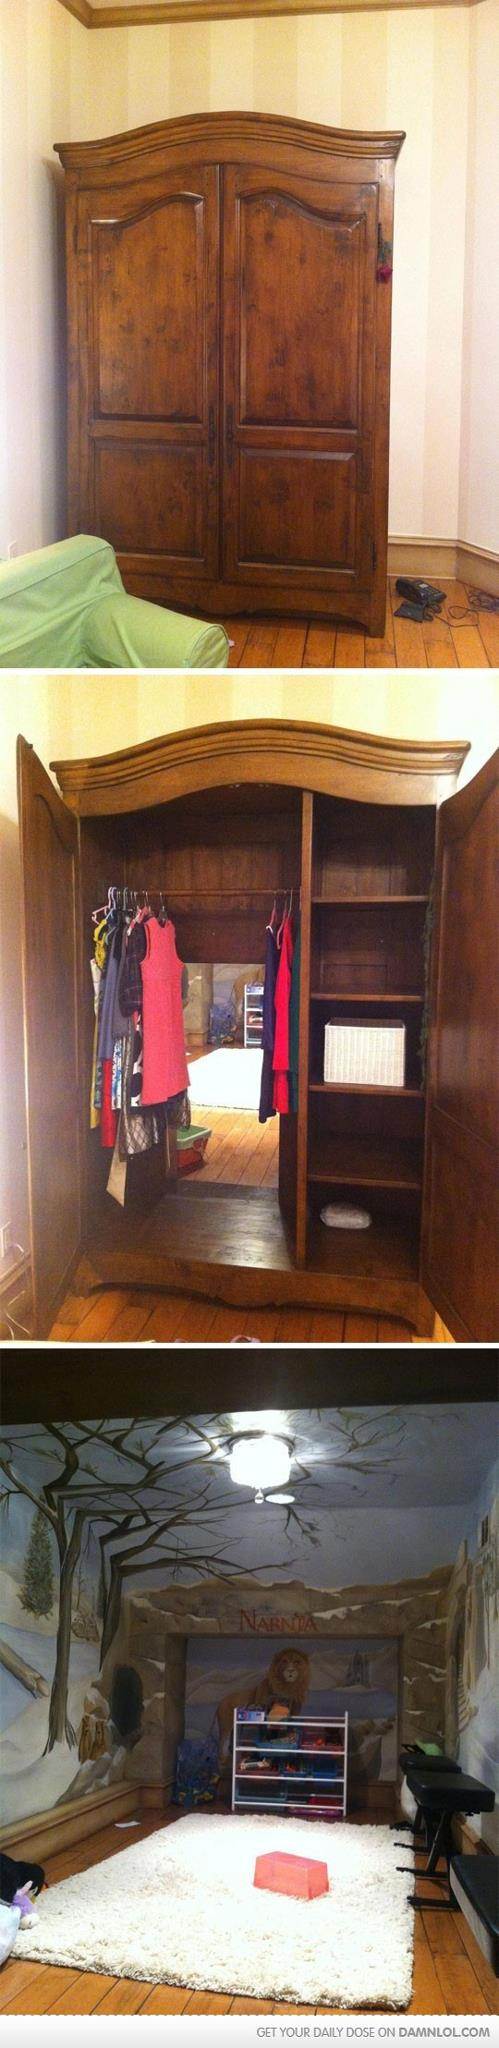 Closet. With Narnia room behind it.....